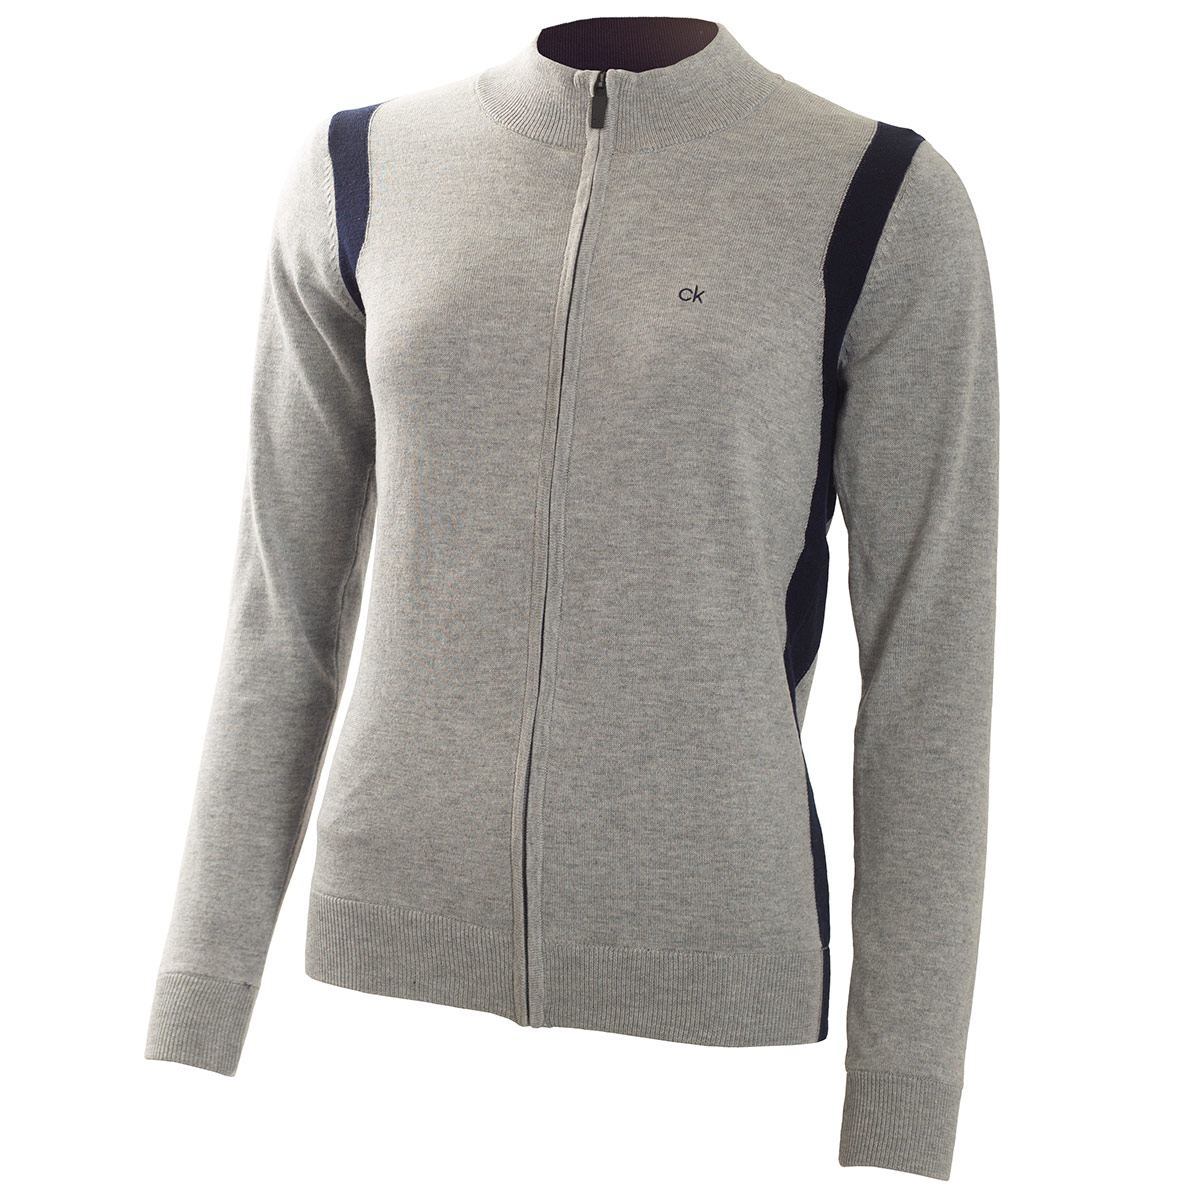 ef0a32d92e Calvin Klein Ladies Lined Sweater